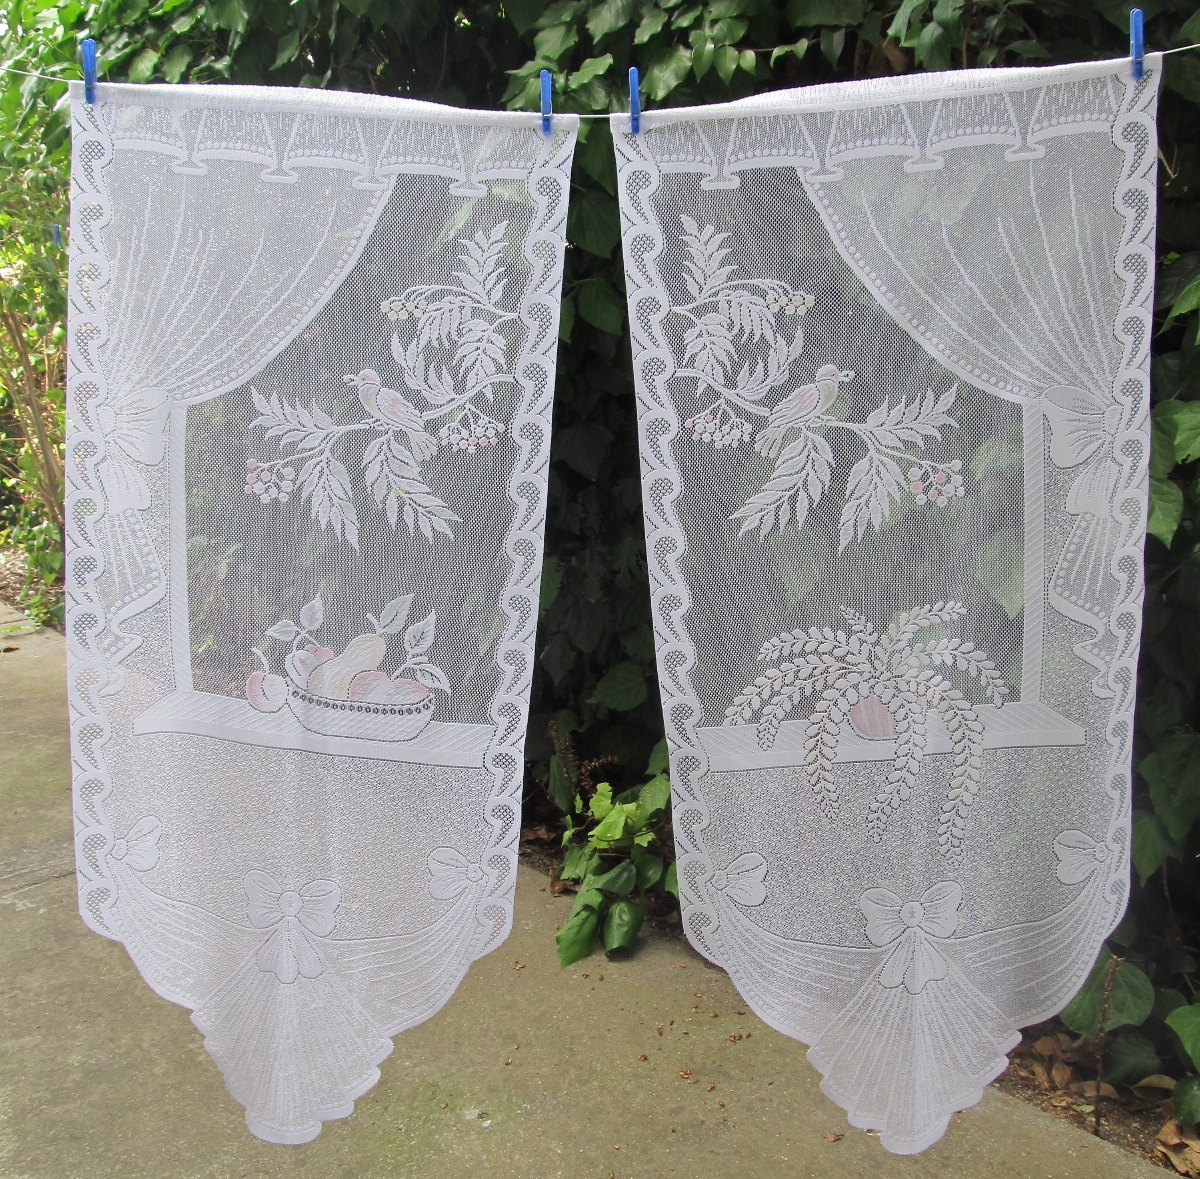 Curtain lace by the yard